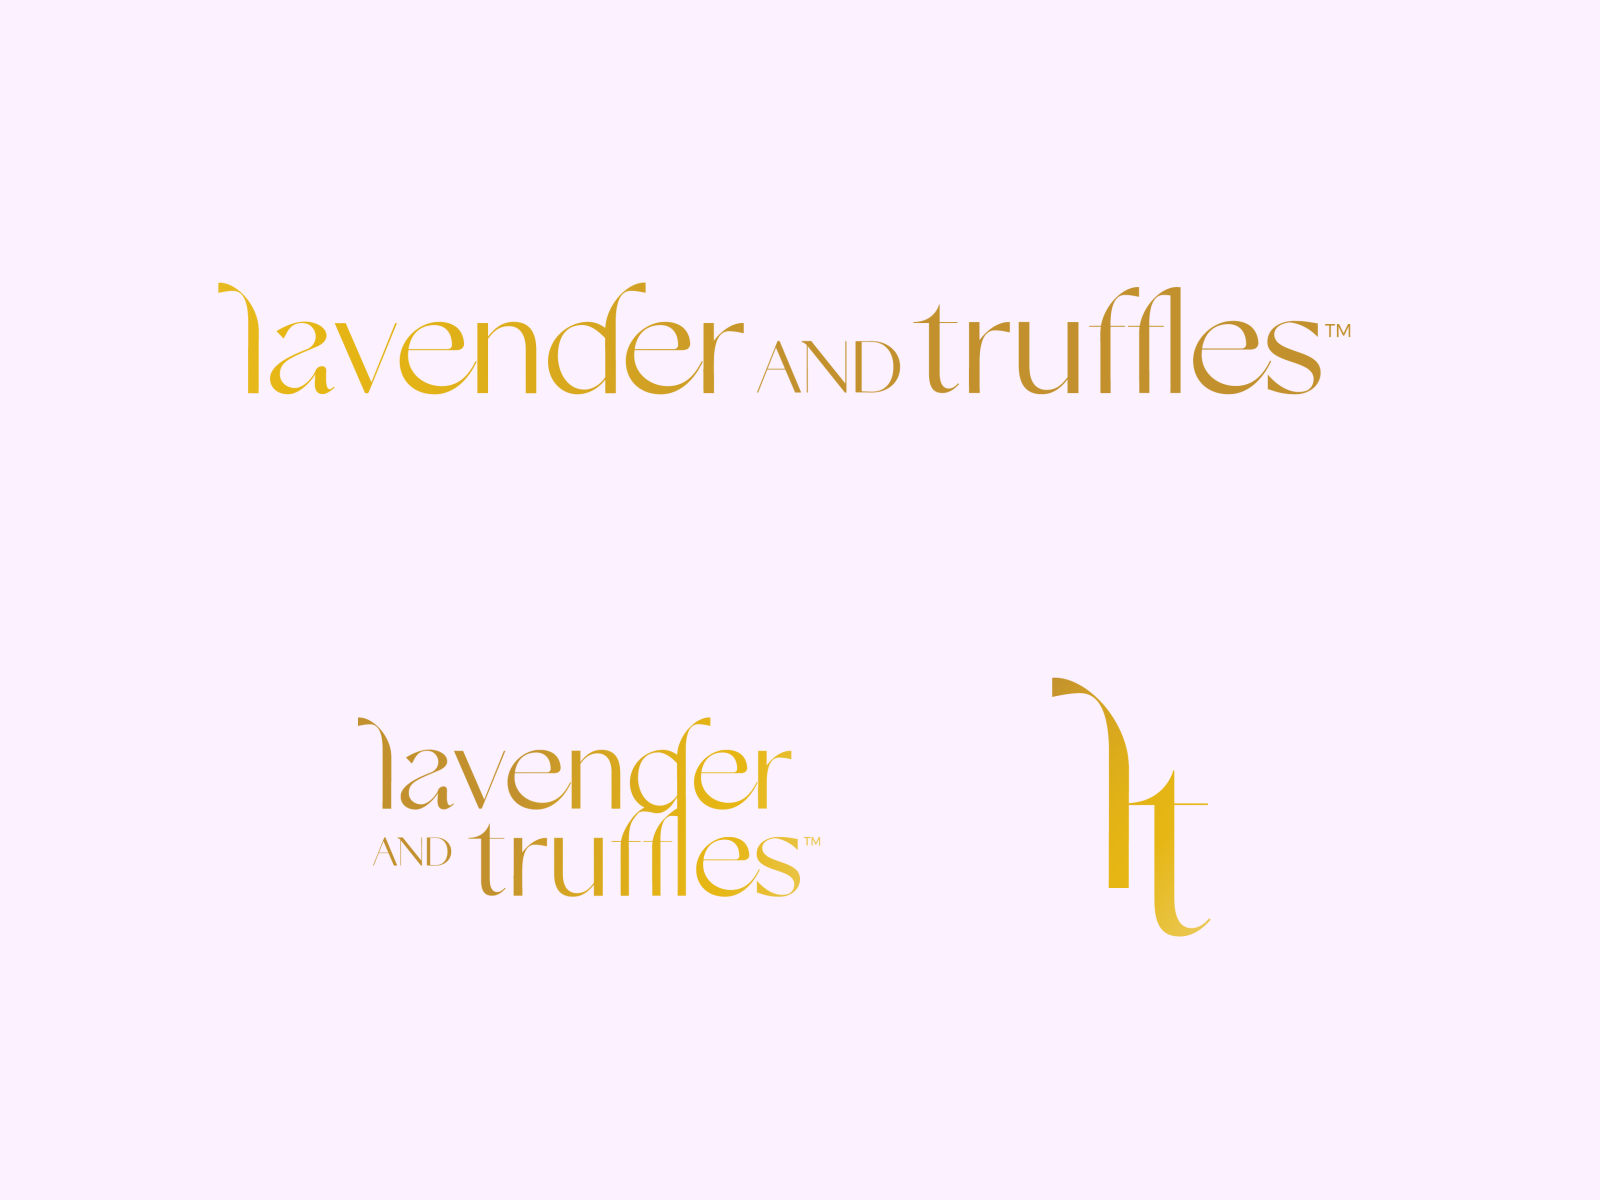 Lavender and Truffles Logos Variations